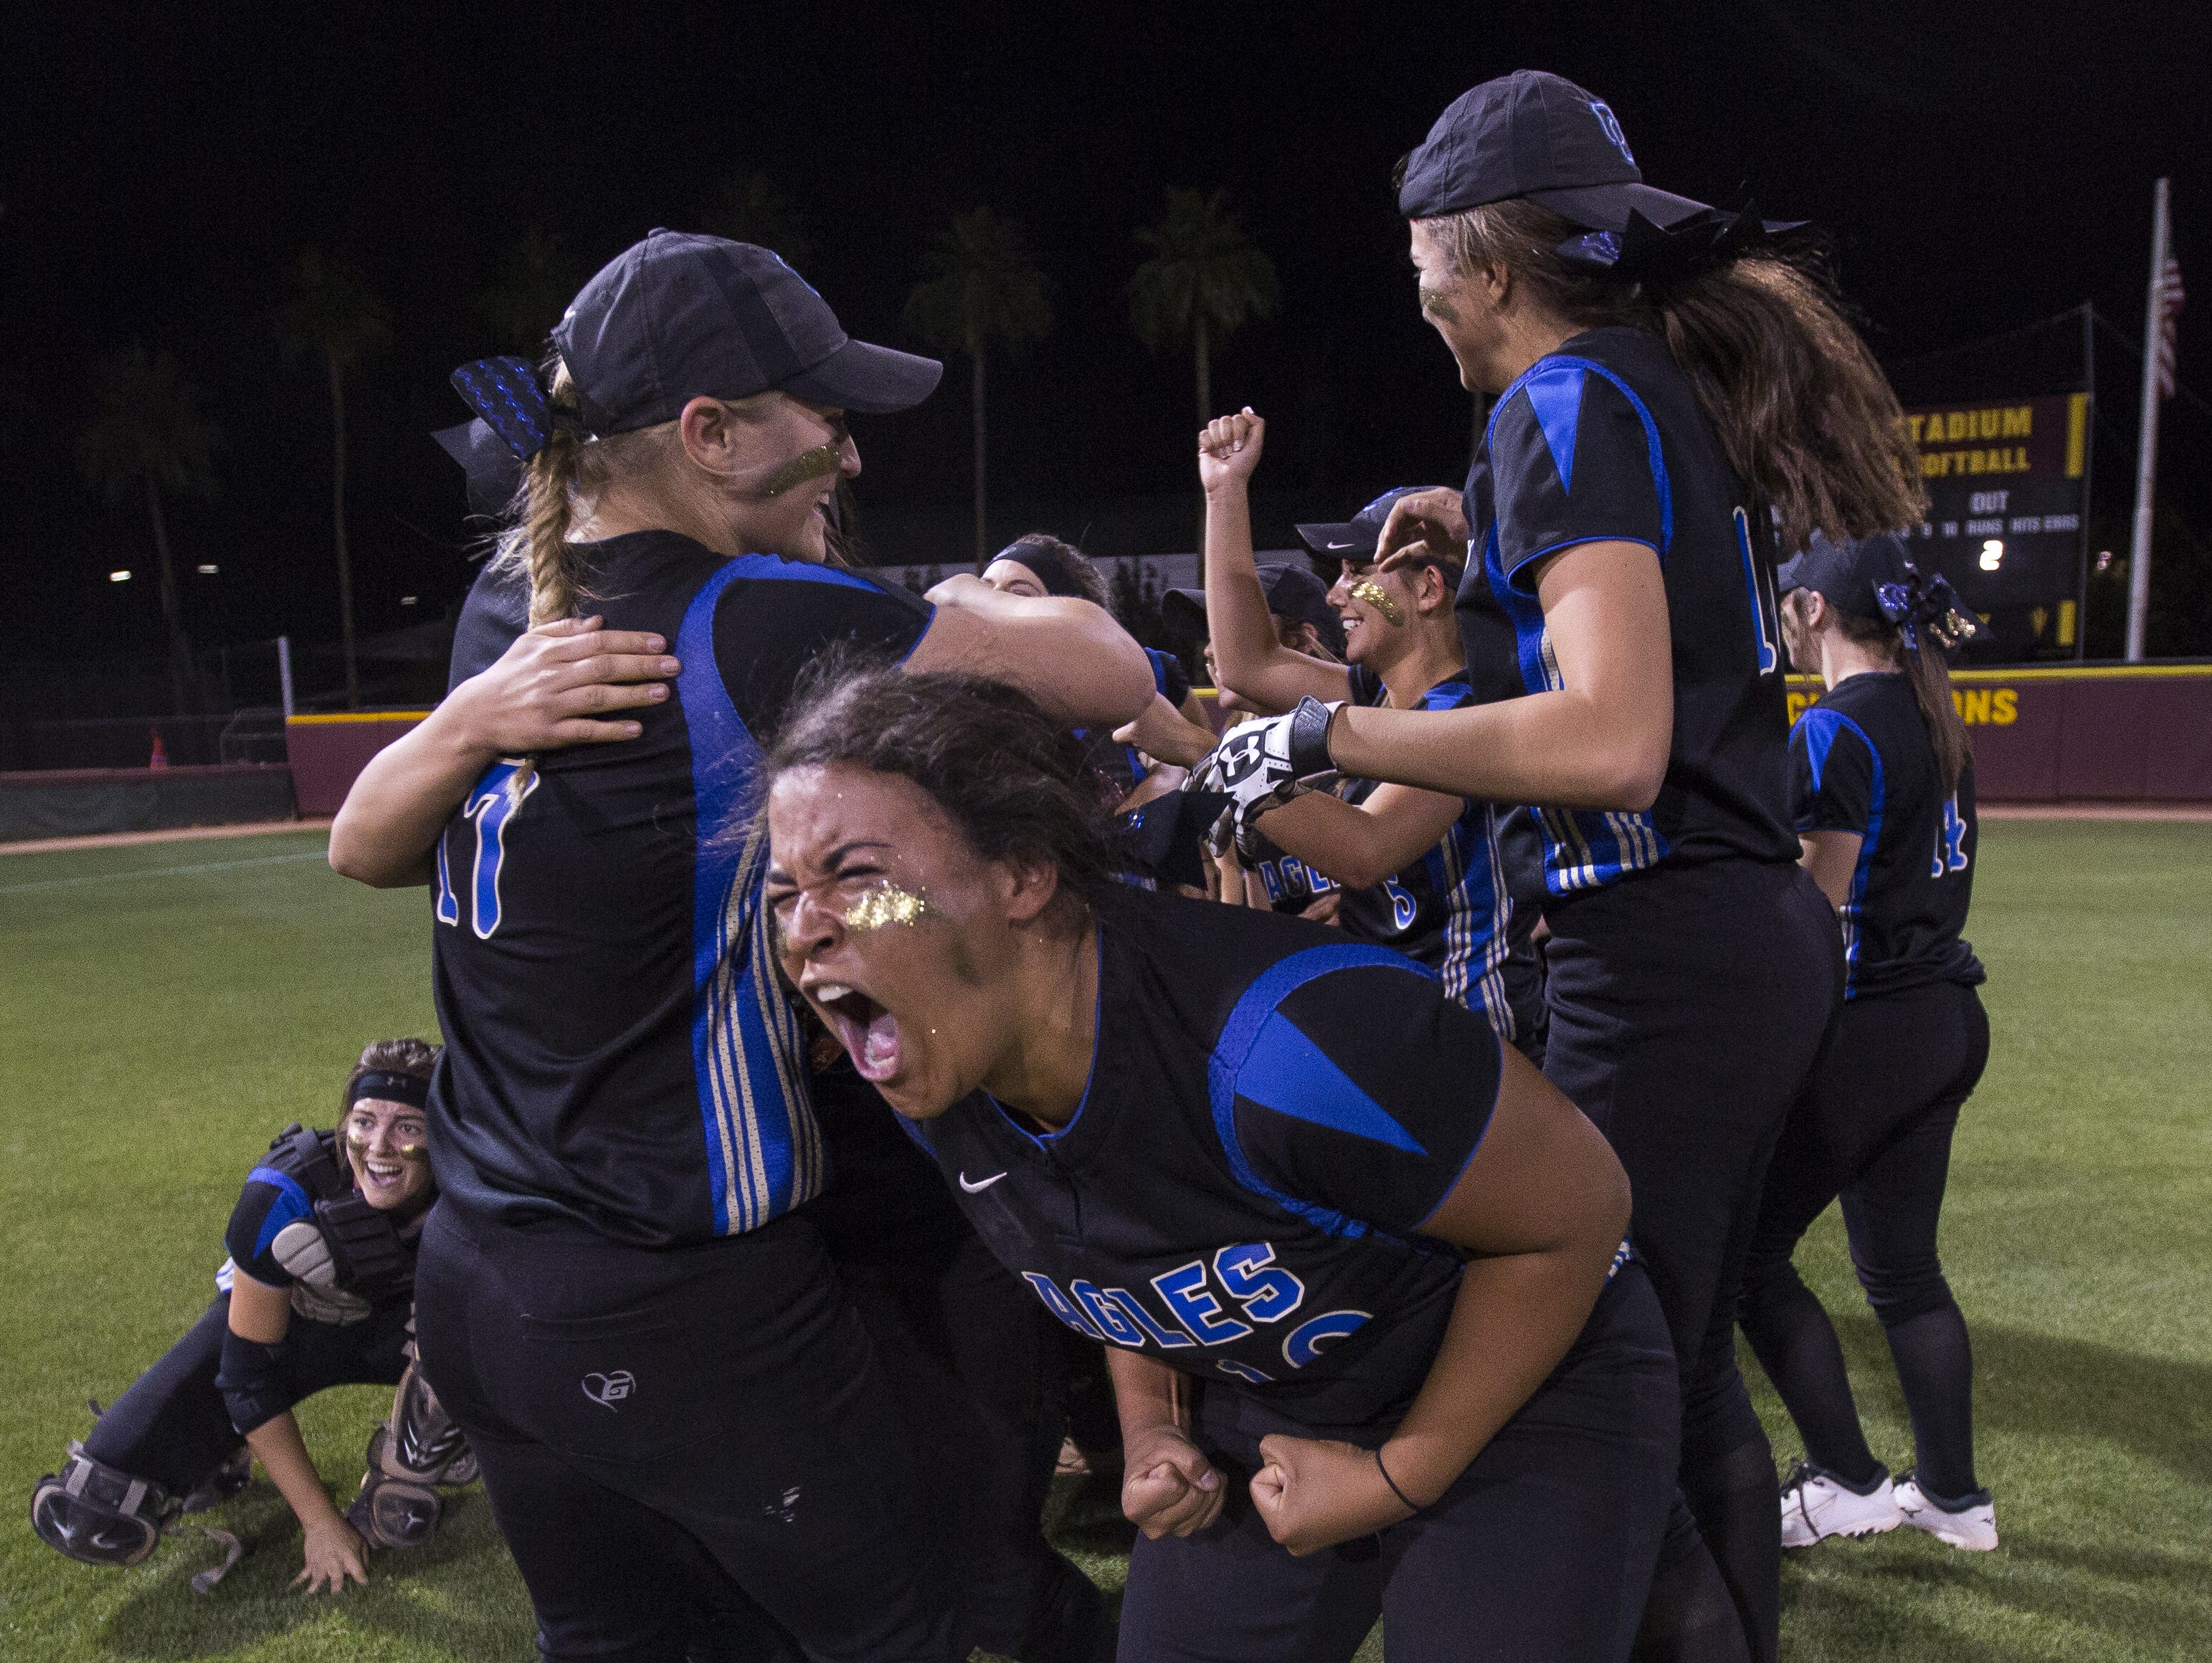 Sandra Day O'Connor's Justyce McClain (10) screams with her team celebrating their D1 State Softball Championship win over Mountain Ridge at Farrington Softball Stadium in Tempe, AZ on May 18, 2015.